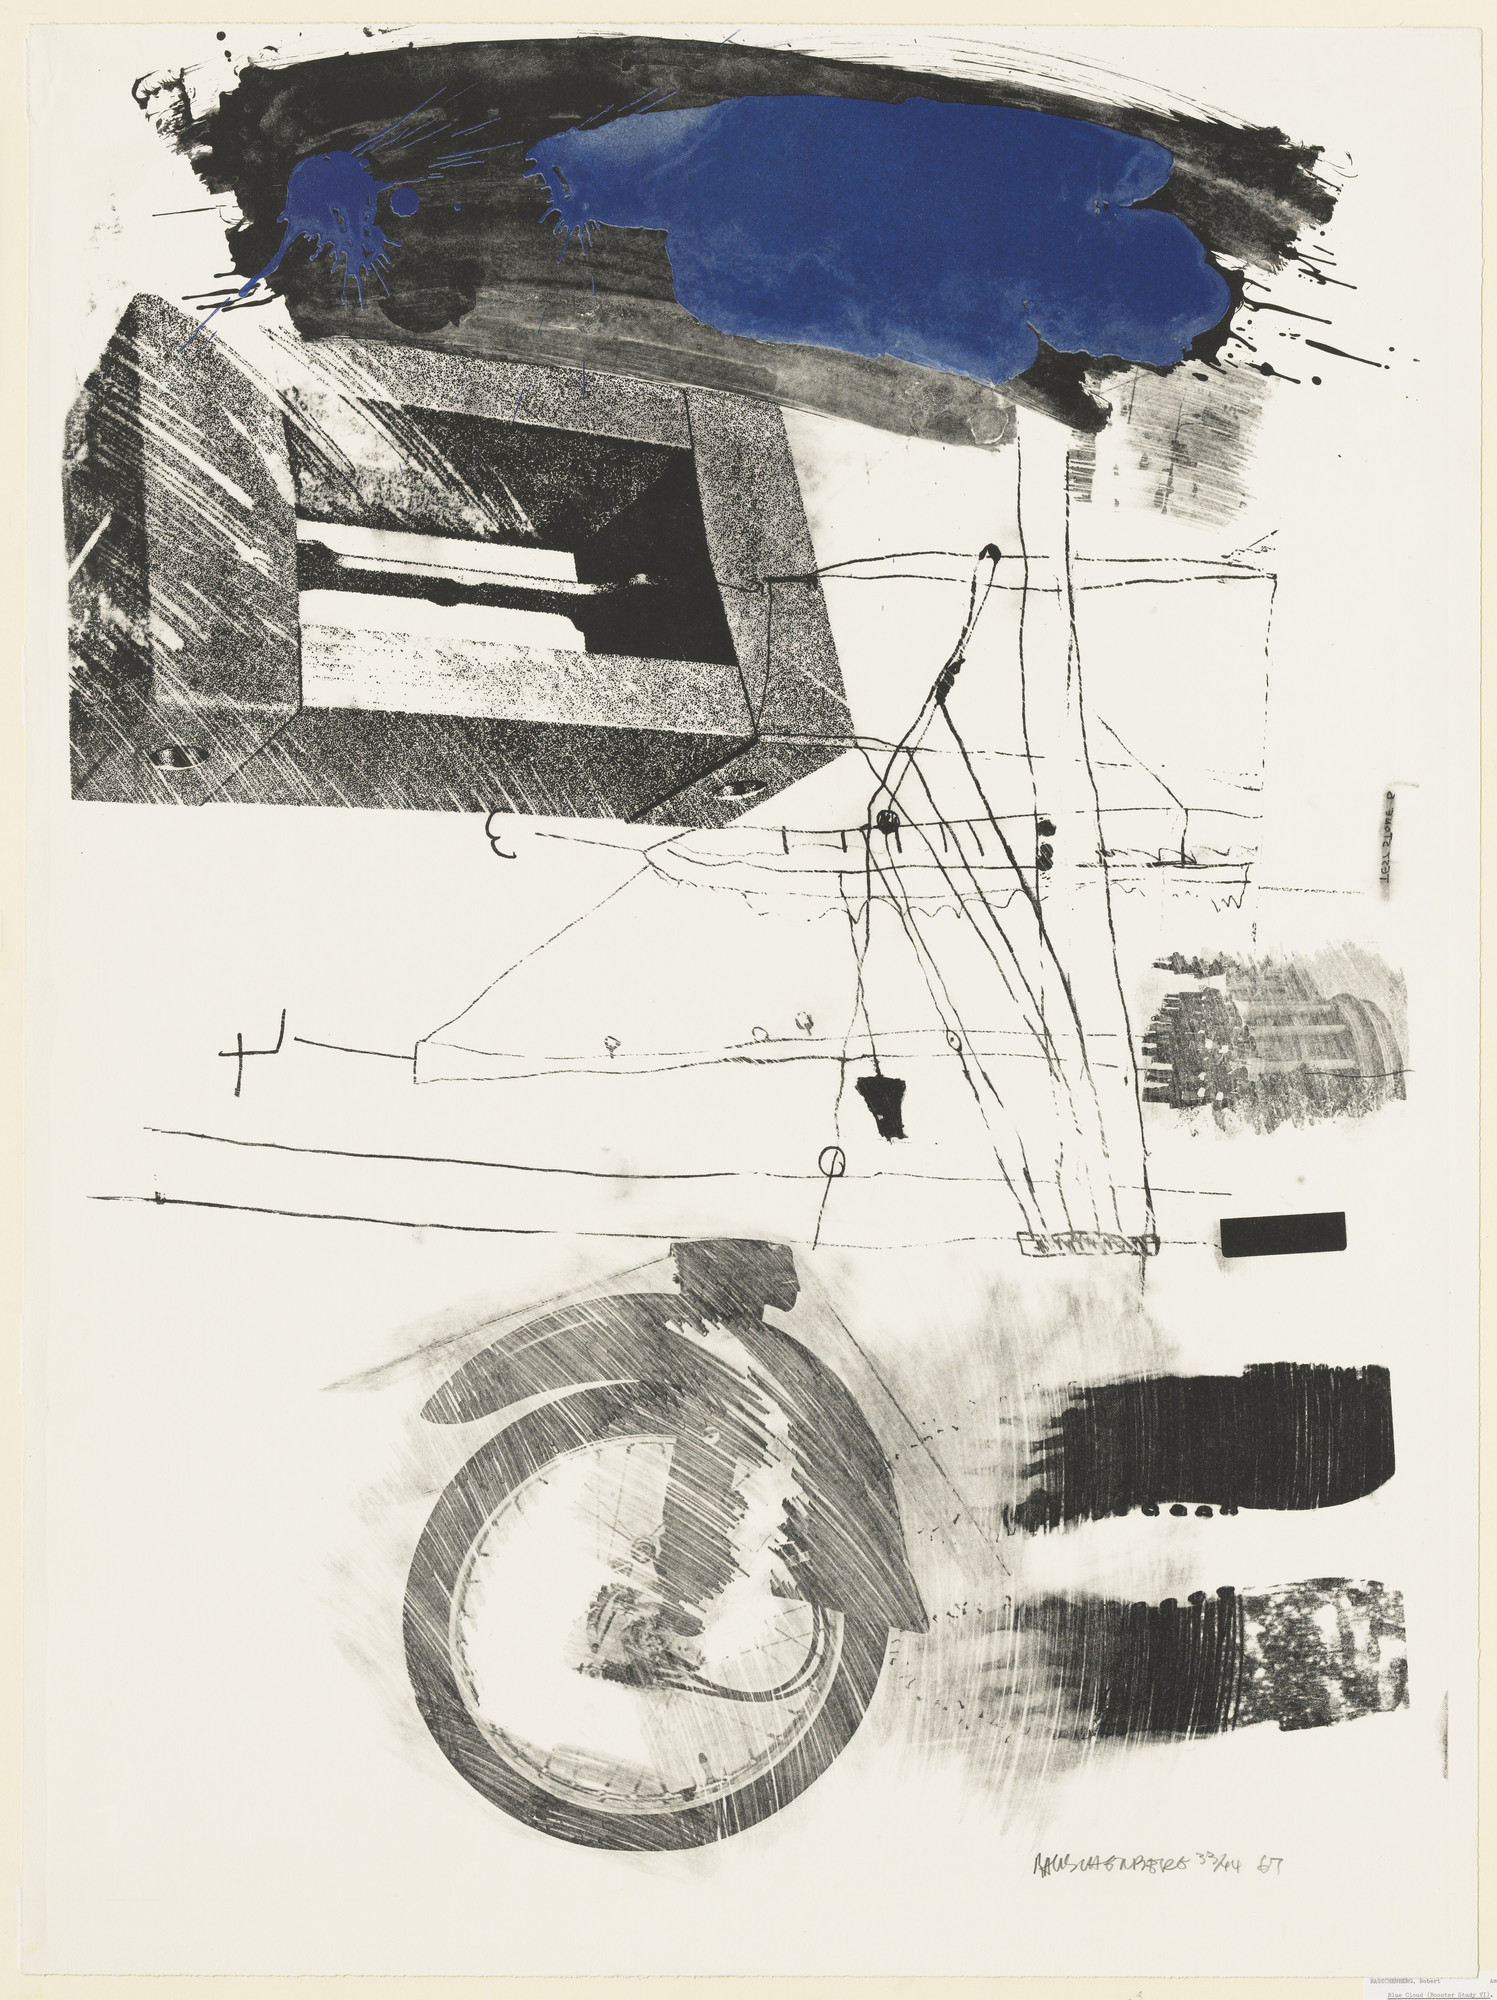 Robert Rauschenberg. Test Stone #6 (Blue Cloud) from Booster and 7 Studies. 1967